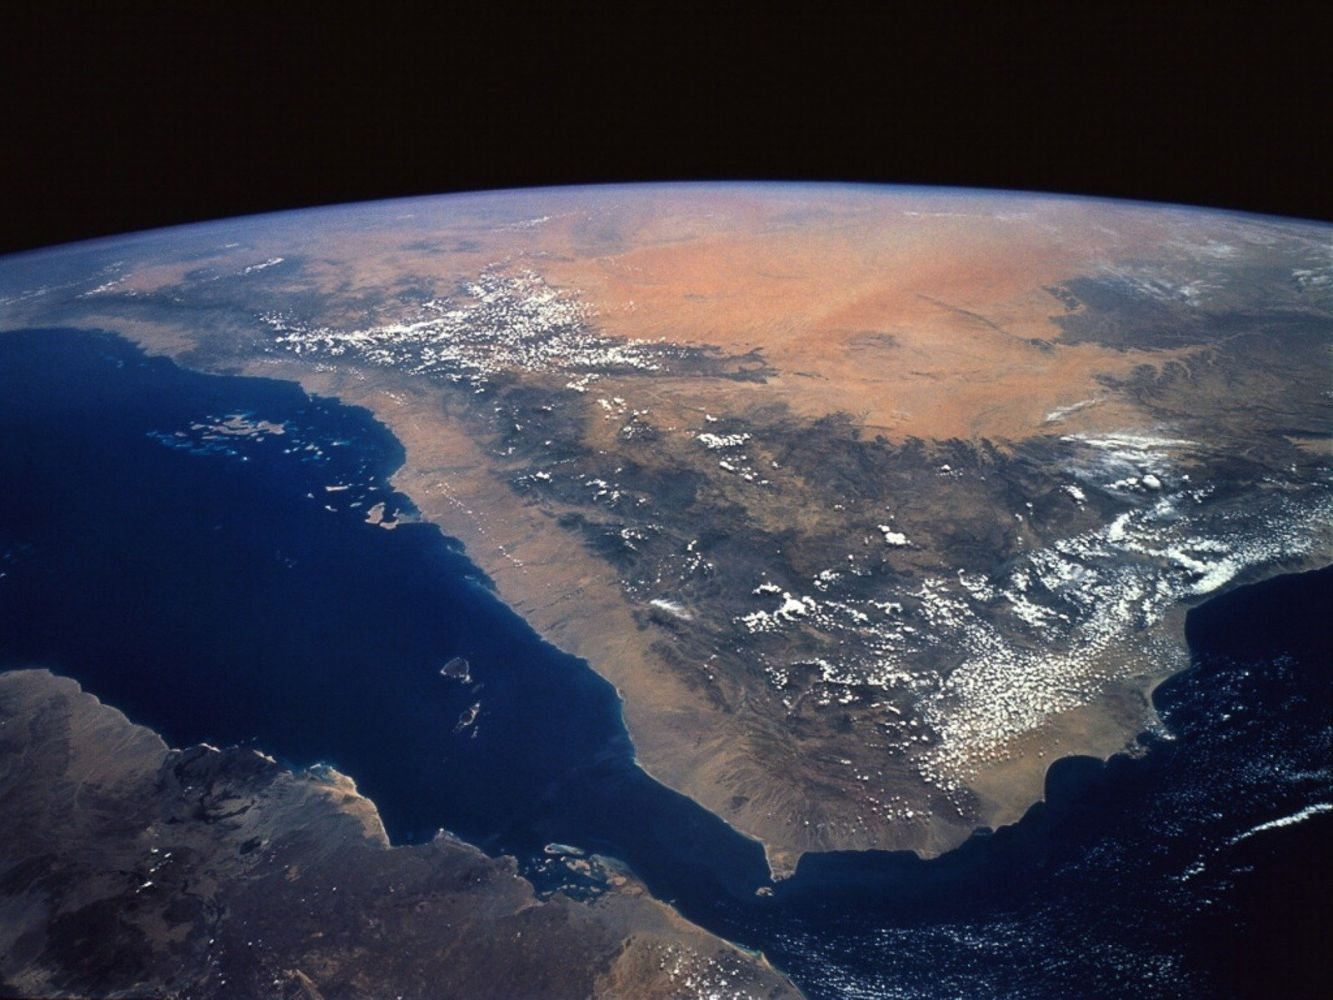 planet earth from space - HD1333×1000